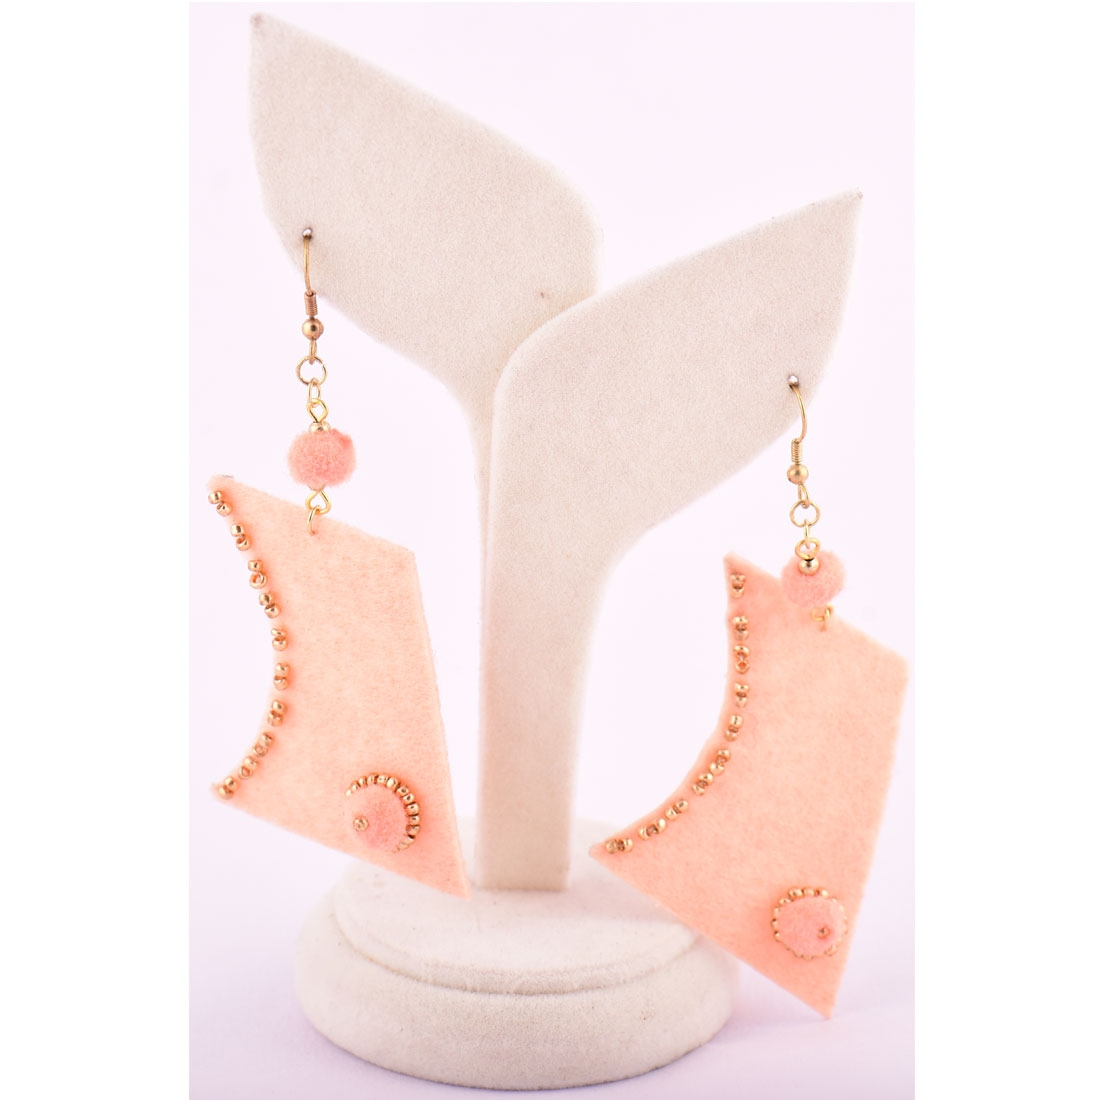 Beads India Beach Sand 1404417 Earrings